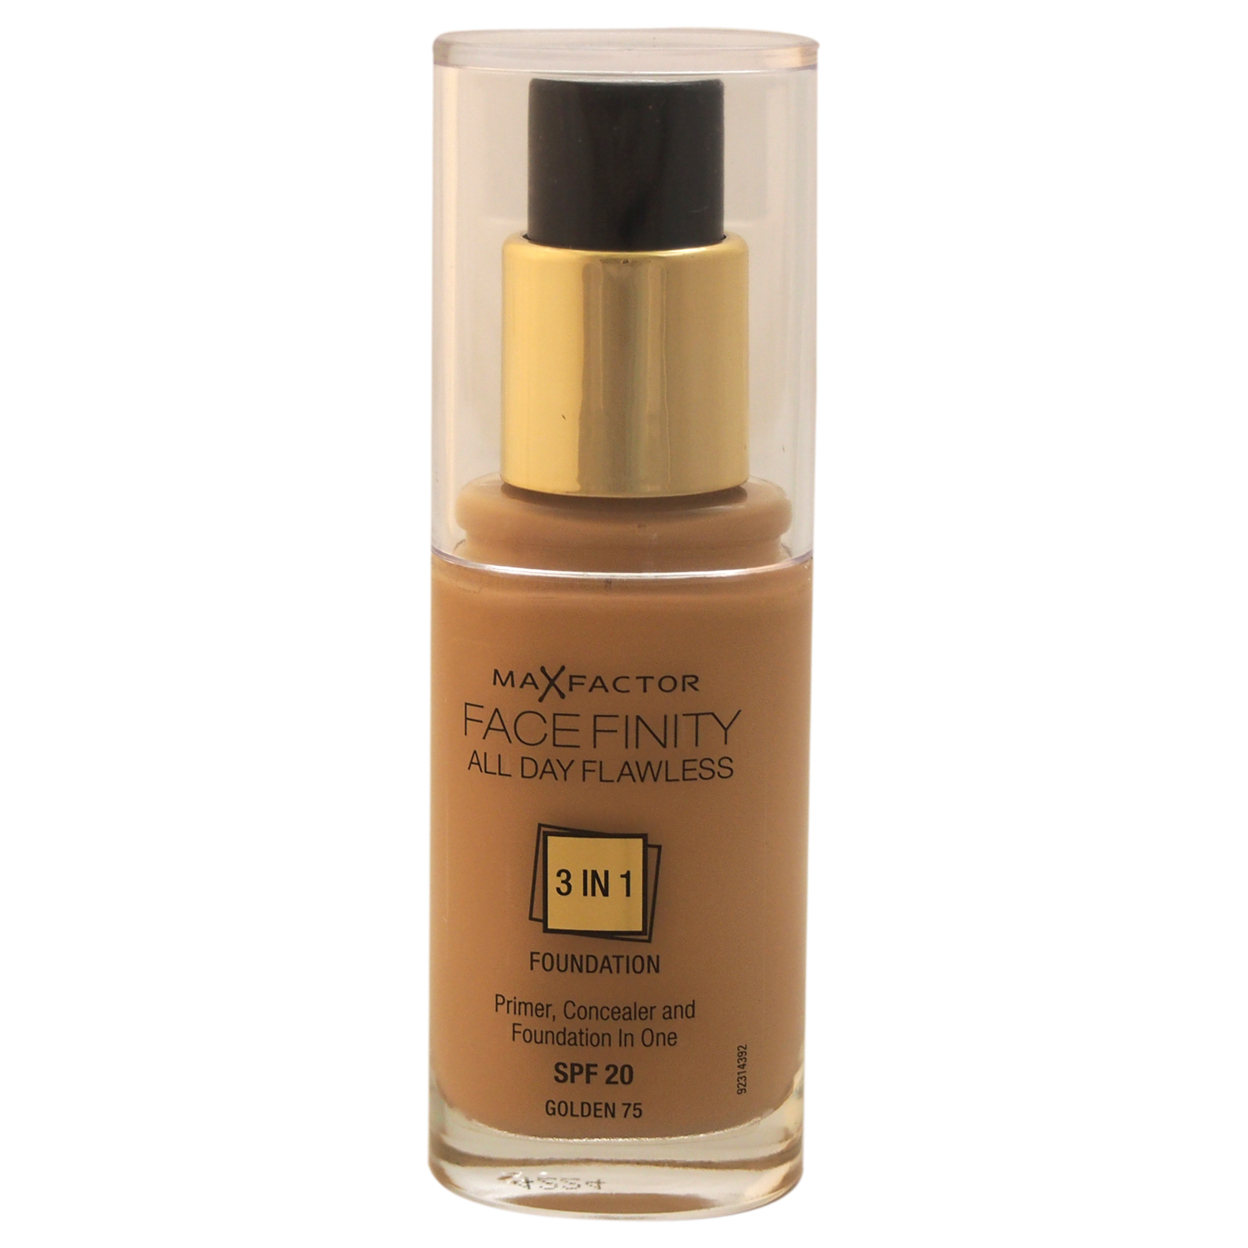 Facefinity All Day Flawless 3 In 1 Foundation Spf20 - # 75 Golden by Max Factor for Women - 1 oz Foundation 55bf9d6da2771c7c648b4e0c